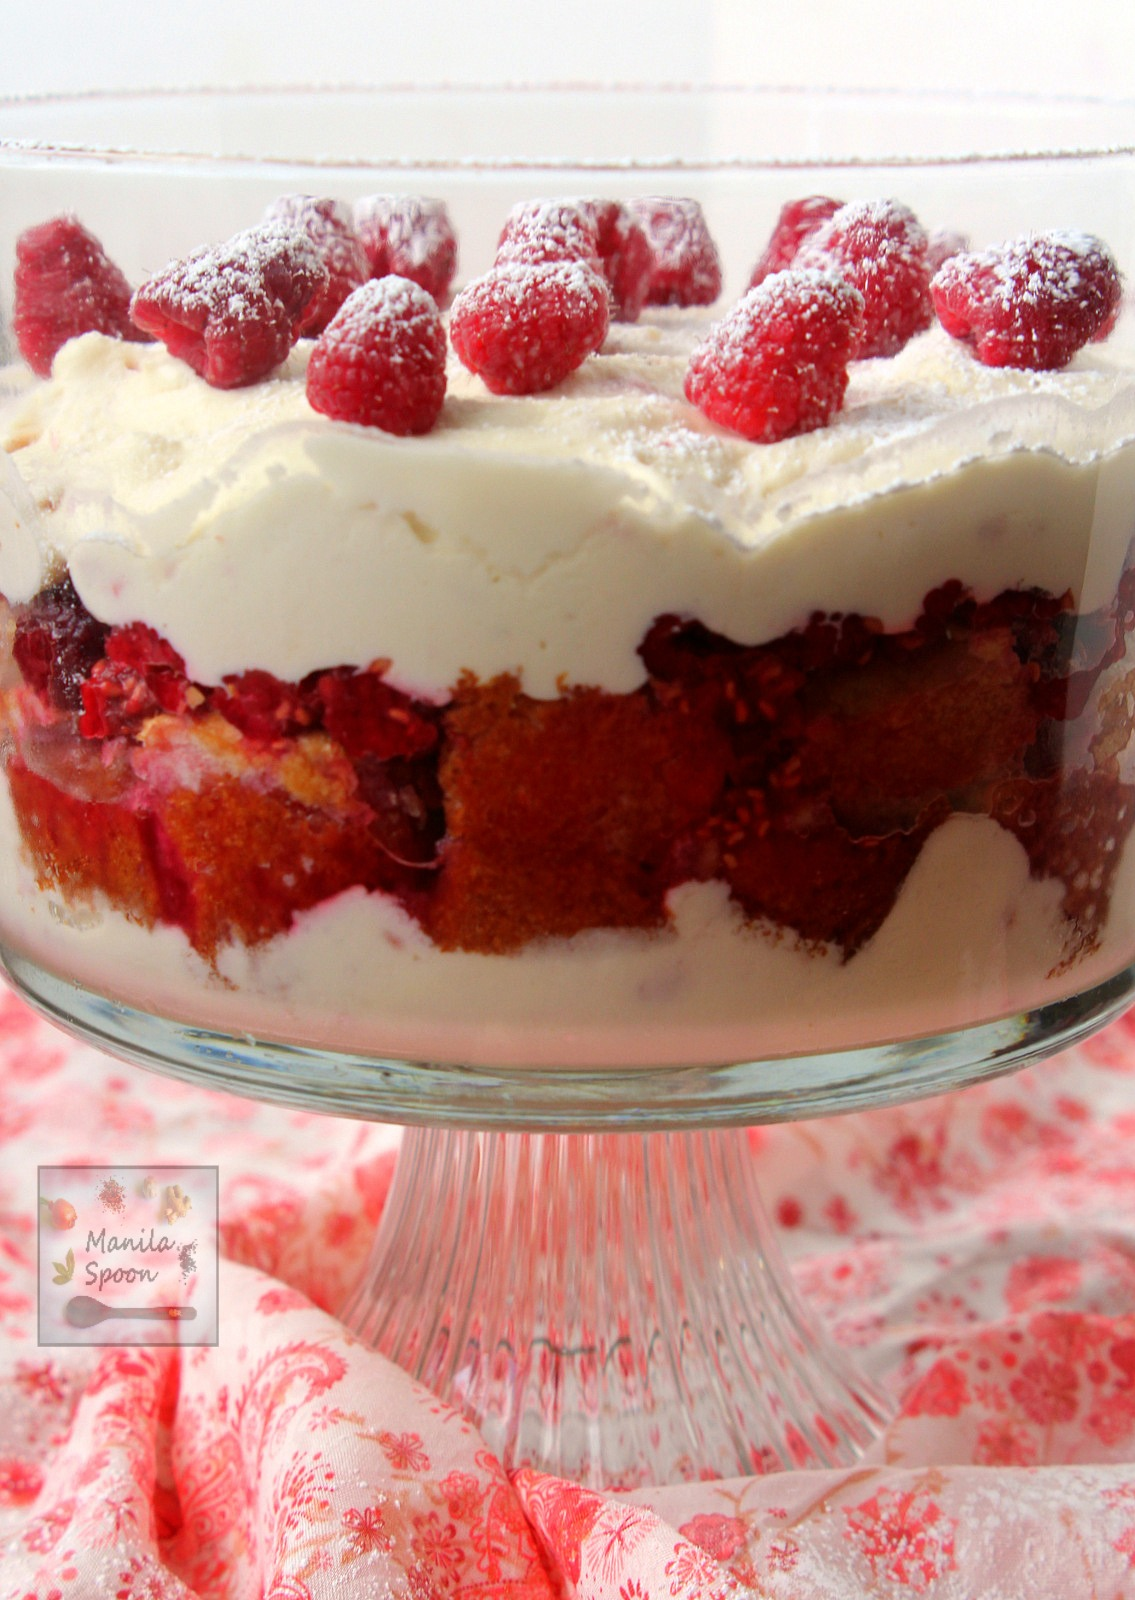 Layered with cake, white chocolate mousse and raspberries this no bake trifle is totally luscious! Quick, easy and so delicious! | manilaspoon.com